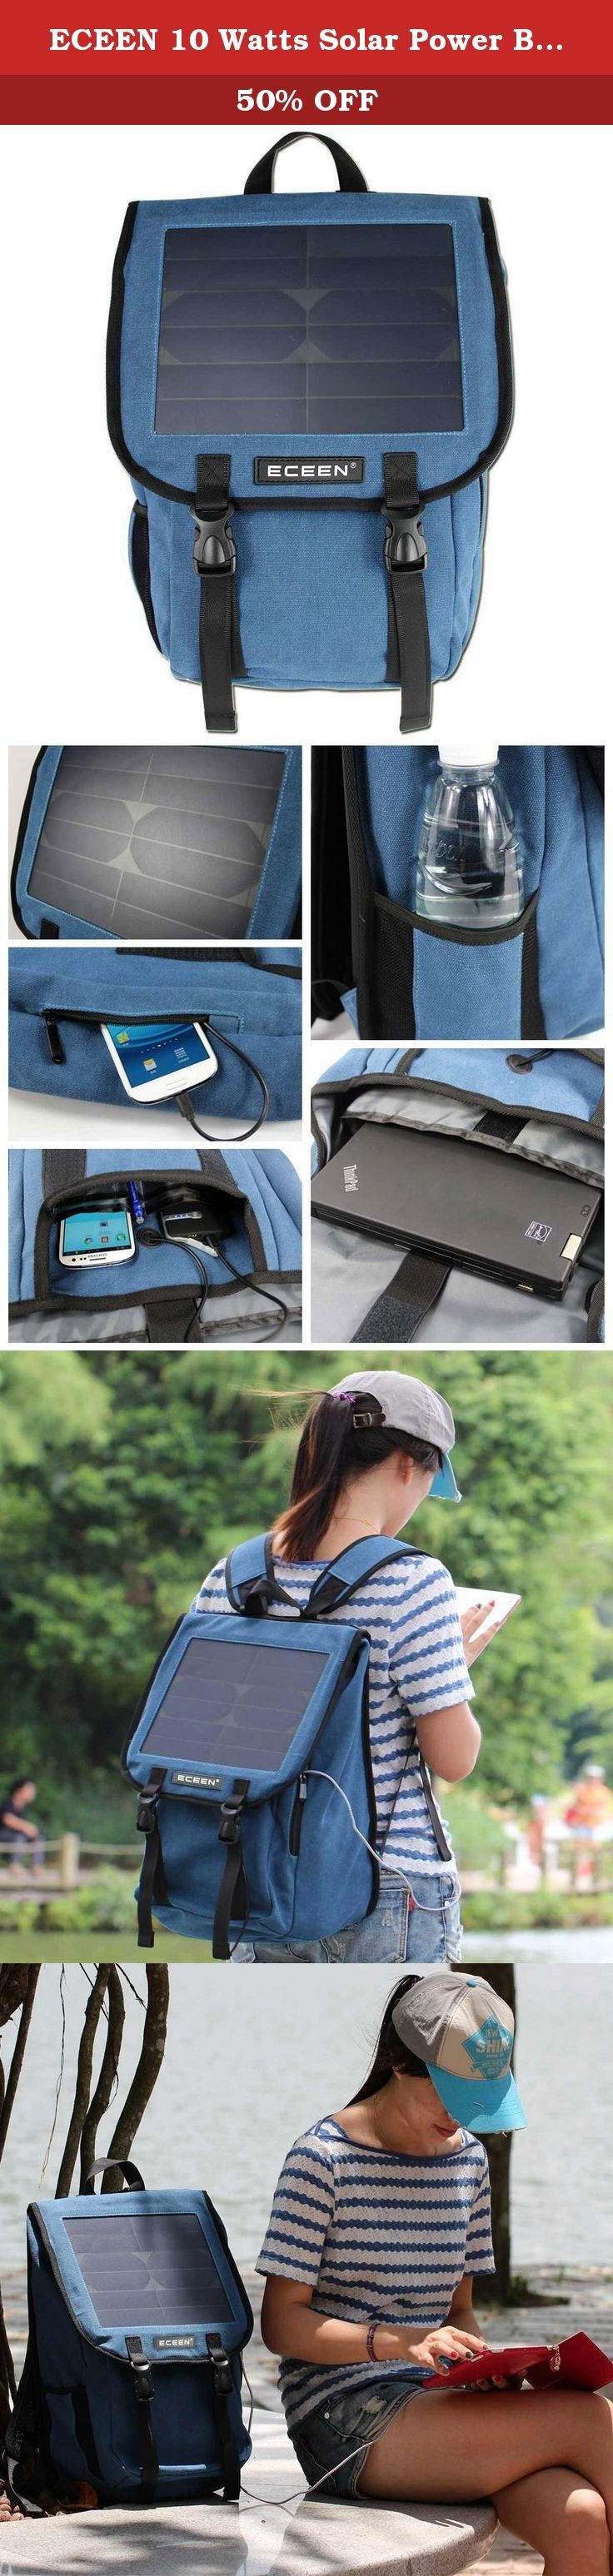 ECEEN 10 Watts Solar Power Backpack, 38 Litres and Canvas Material Bag, Solar Power Charger with Voltage Regualte Charging For iPhone, iPad, SAMSUNG, Gopro Cameras etc. 5V Device. (Blue). * ECEEN® is a registered trademark. ONLY Authorized seller of ECEEN® can sell under ECEEN® listings. The Solar Power Bag is a stylish backpack with all of the functionality and looks of a well-equipped backpack with the addition of a solar charging module. The Solar Power Bag has pockets for your cell…